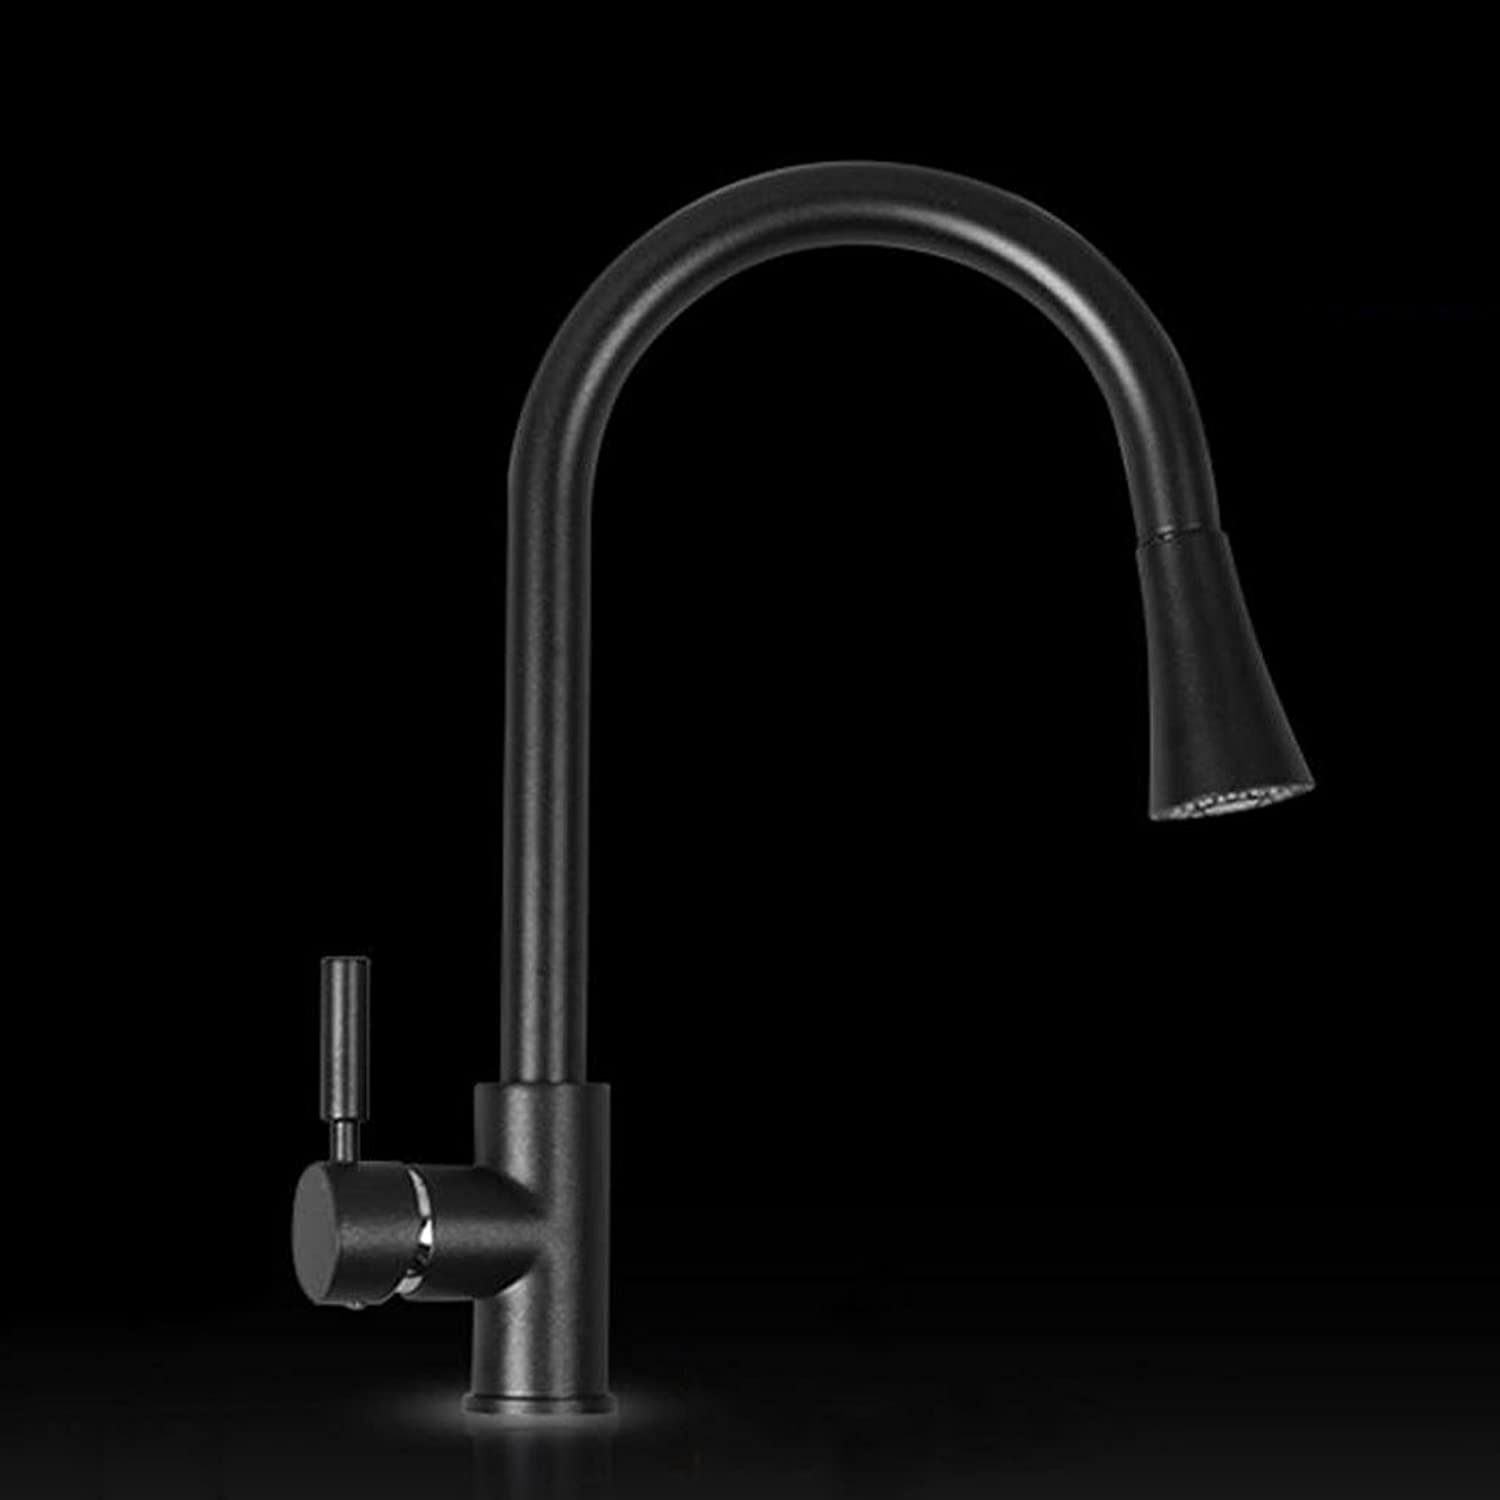 Rollsnownow Quartz stone sink faucet, kitchen sink faucet, high-grade, hot and cold pull-type faucet